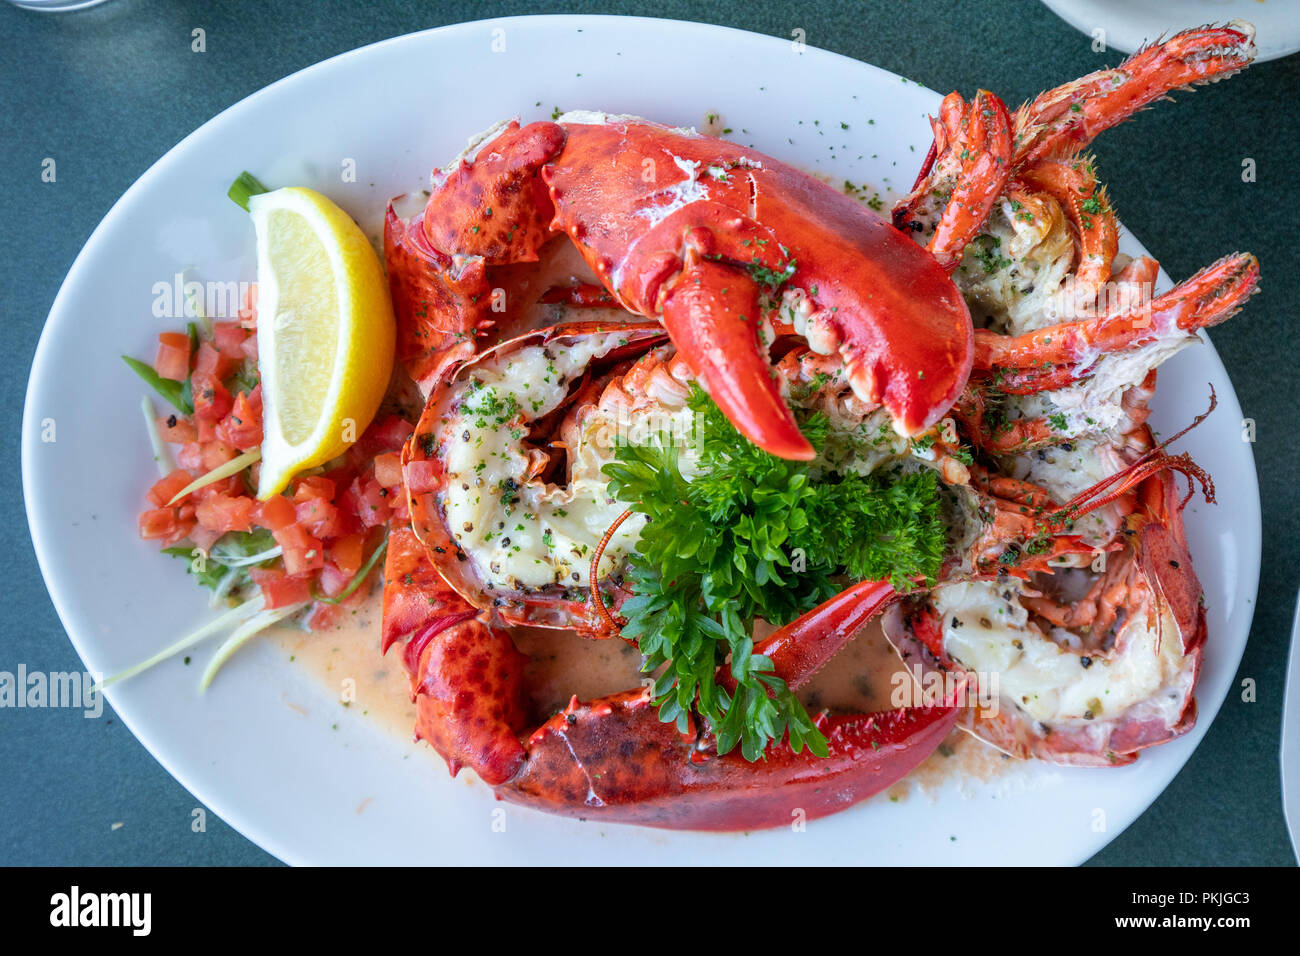 Lobster Usa Food Stock Photos & Lobster Usa Food Stock Images - Alamy